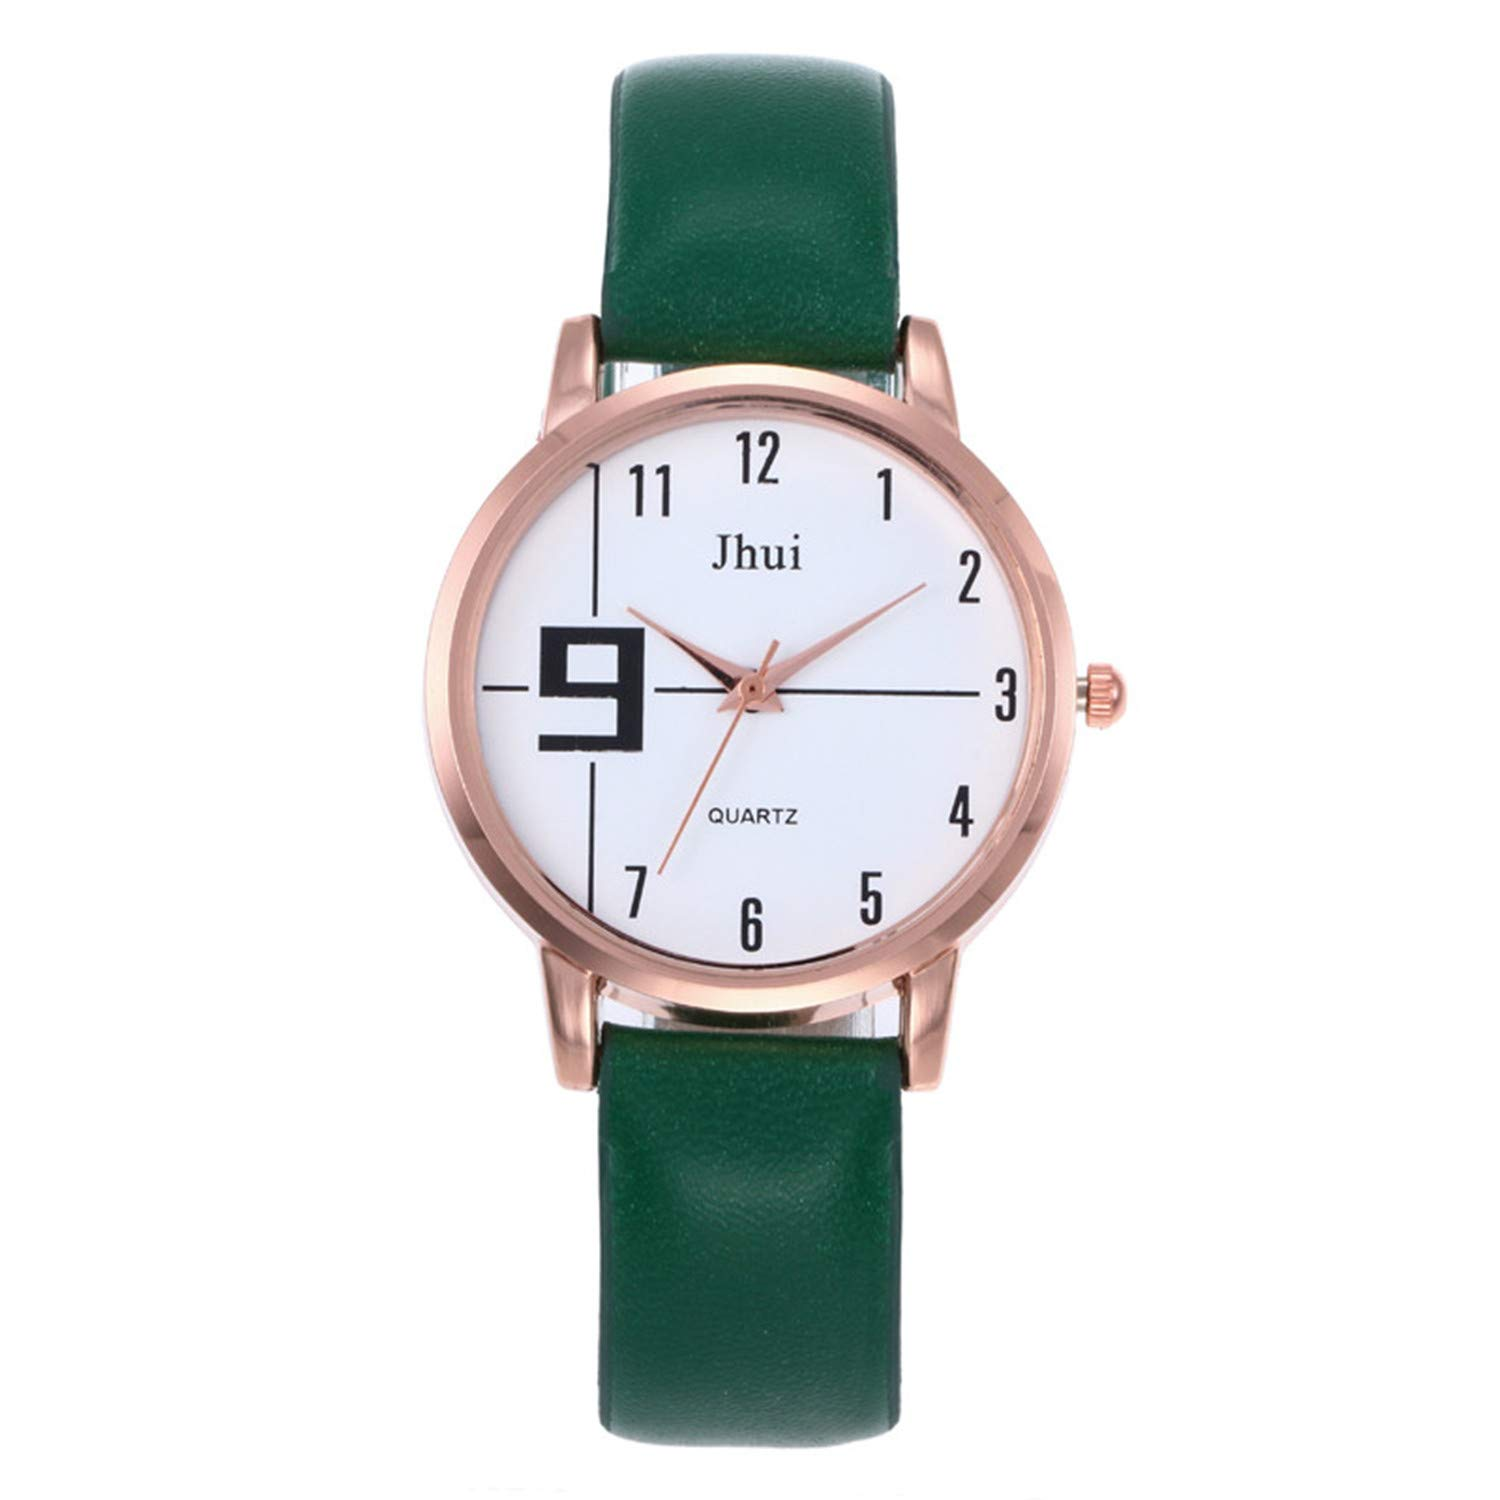 Amazon.com : liberalism Casual Ladies Watch Fashion Female Leather Quartz Wrist Watch Women Watches Clock Bracelet Watch Relojes para Mujer(Black, ...